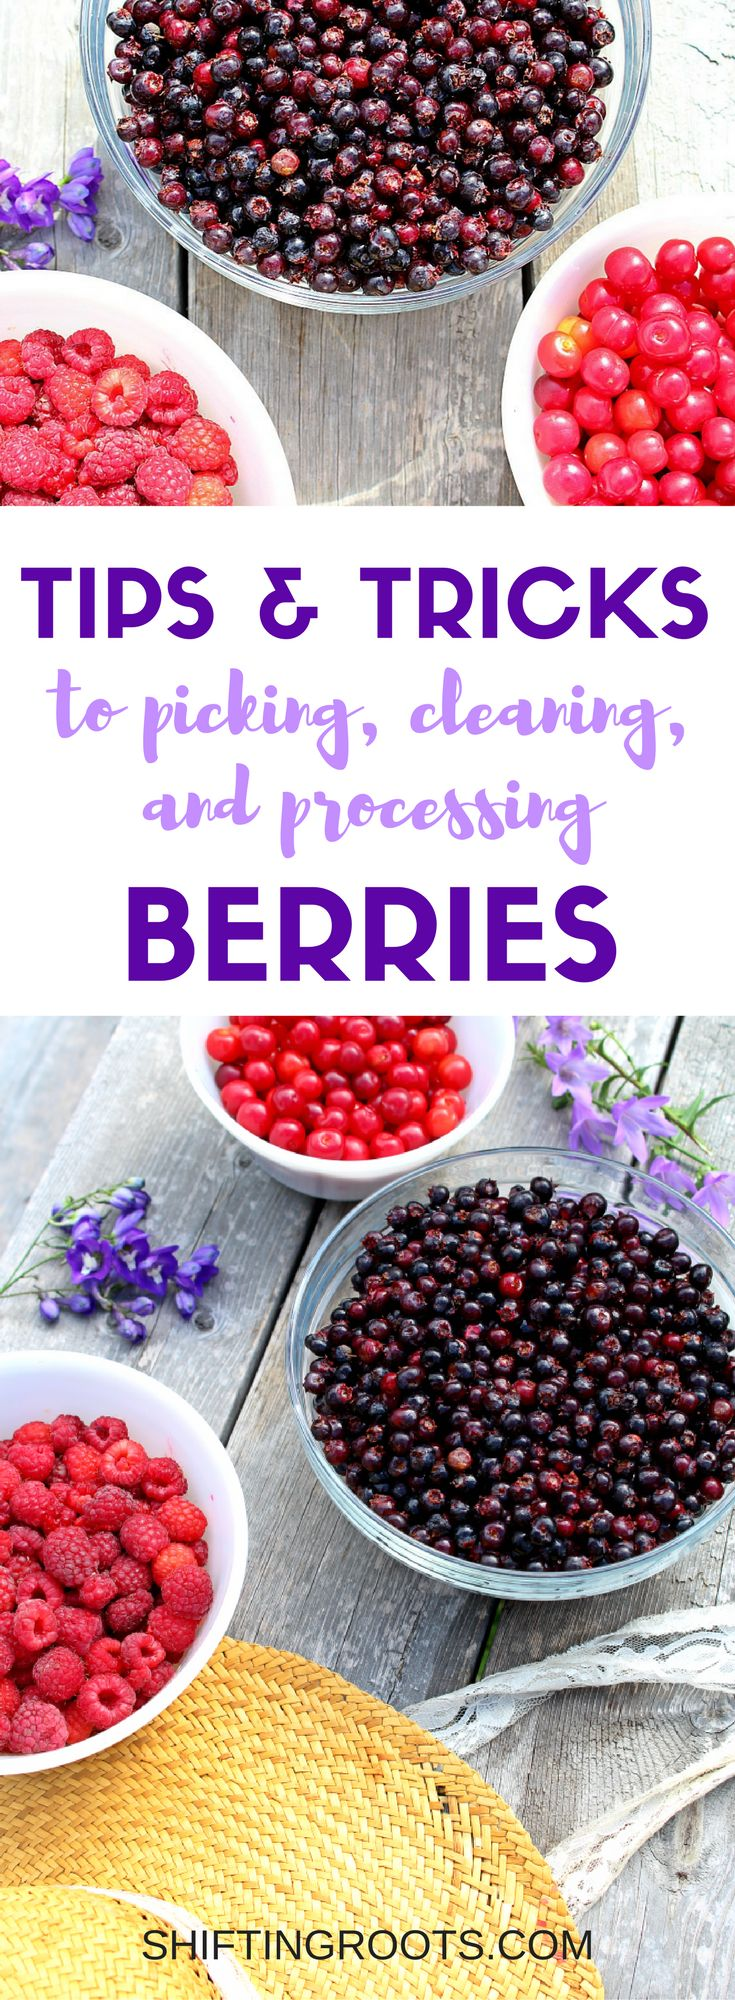 Berry Picking is so much fun, but can be a lot of work. Whether you're working with saskatoon berries, strawberries, sour cherries, or raspberries, I've got plenty of little tips and tricks to help you pick, clean and process with ease. I've also included